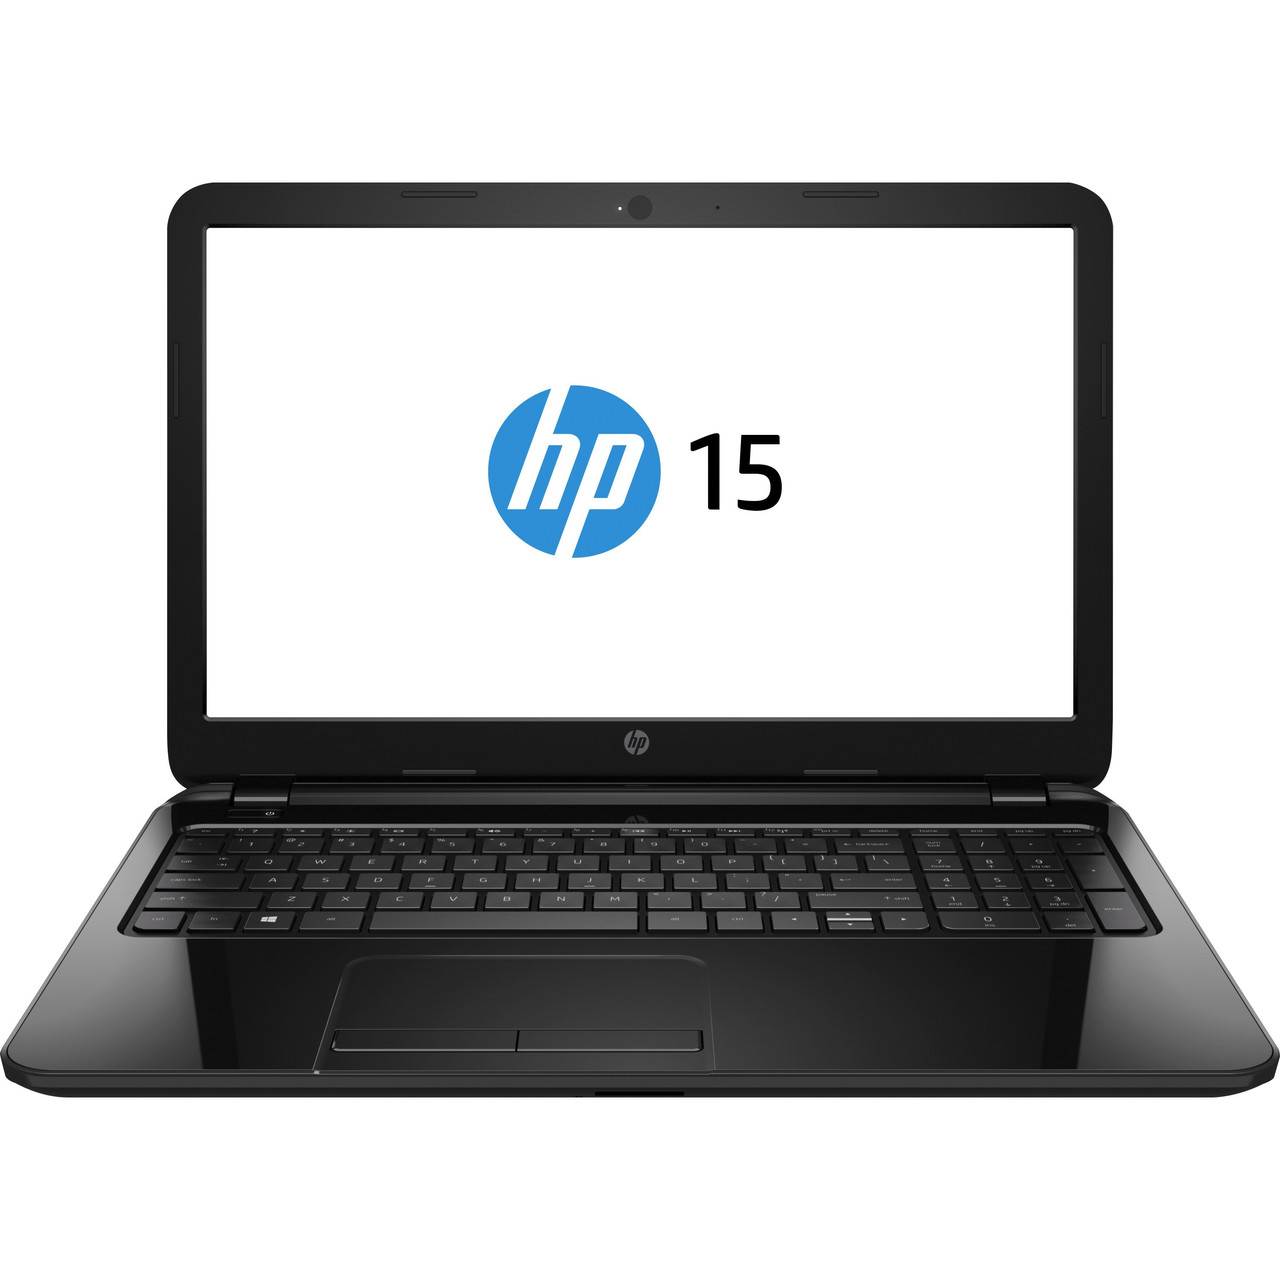 Ноутбук HP 15-r052nr (G9D77UA) (NEW)